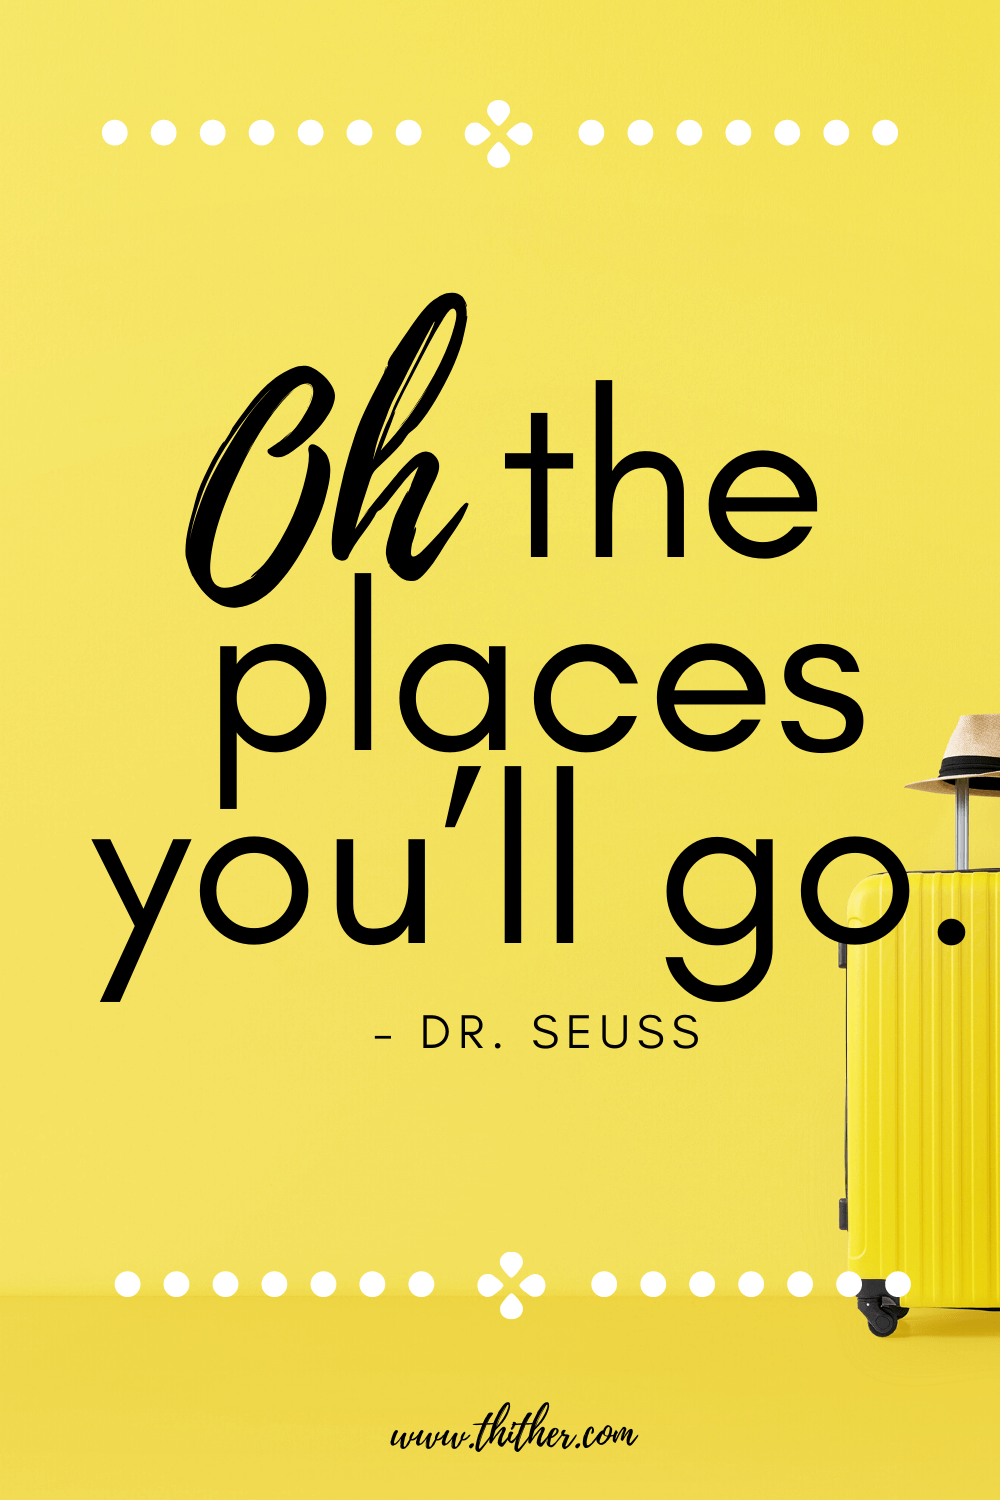 family-travel-quotes-dr-seuss - Thither